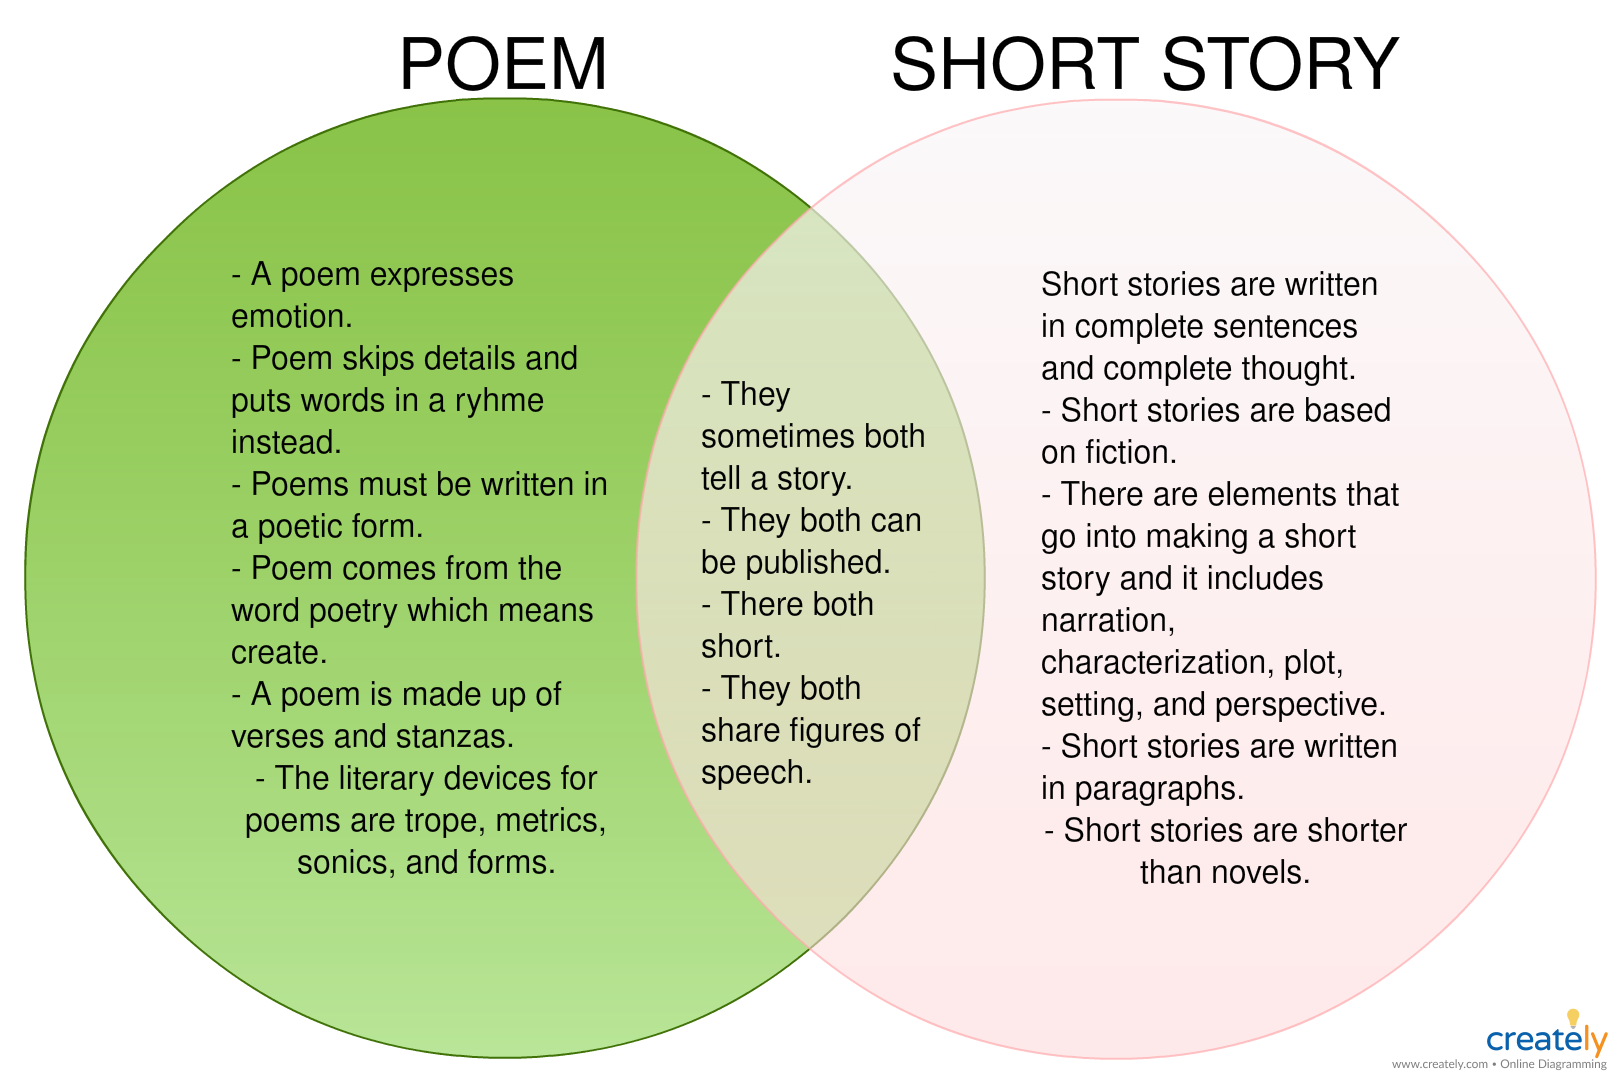 medium resolution of poem vs short story venn diagram similarities and differences between short story and poem you can edit this template and create your own diagram